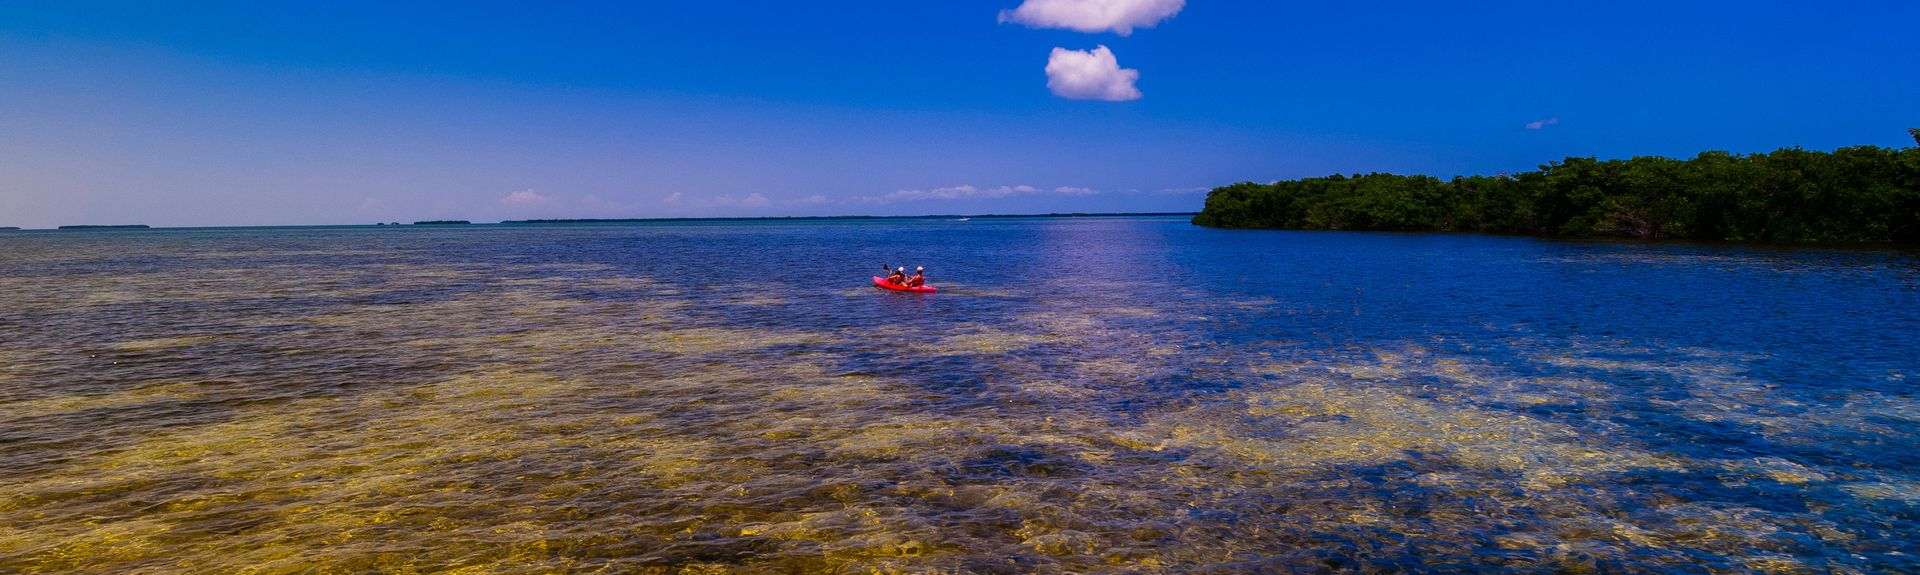 Big Pine Key, Florida, United States of America